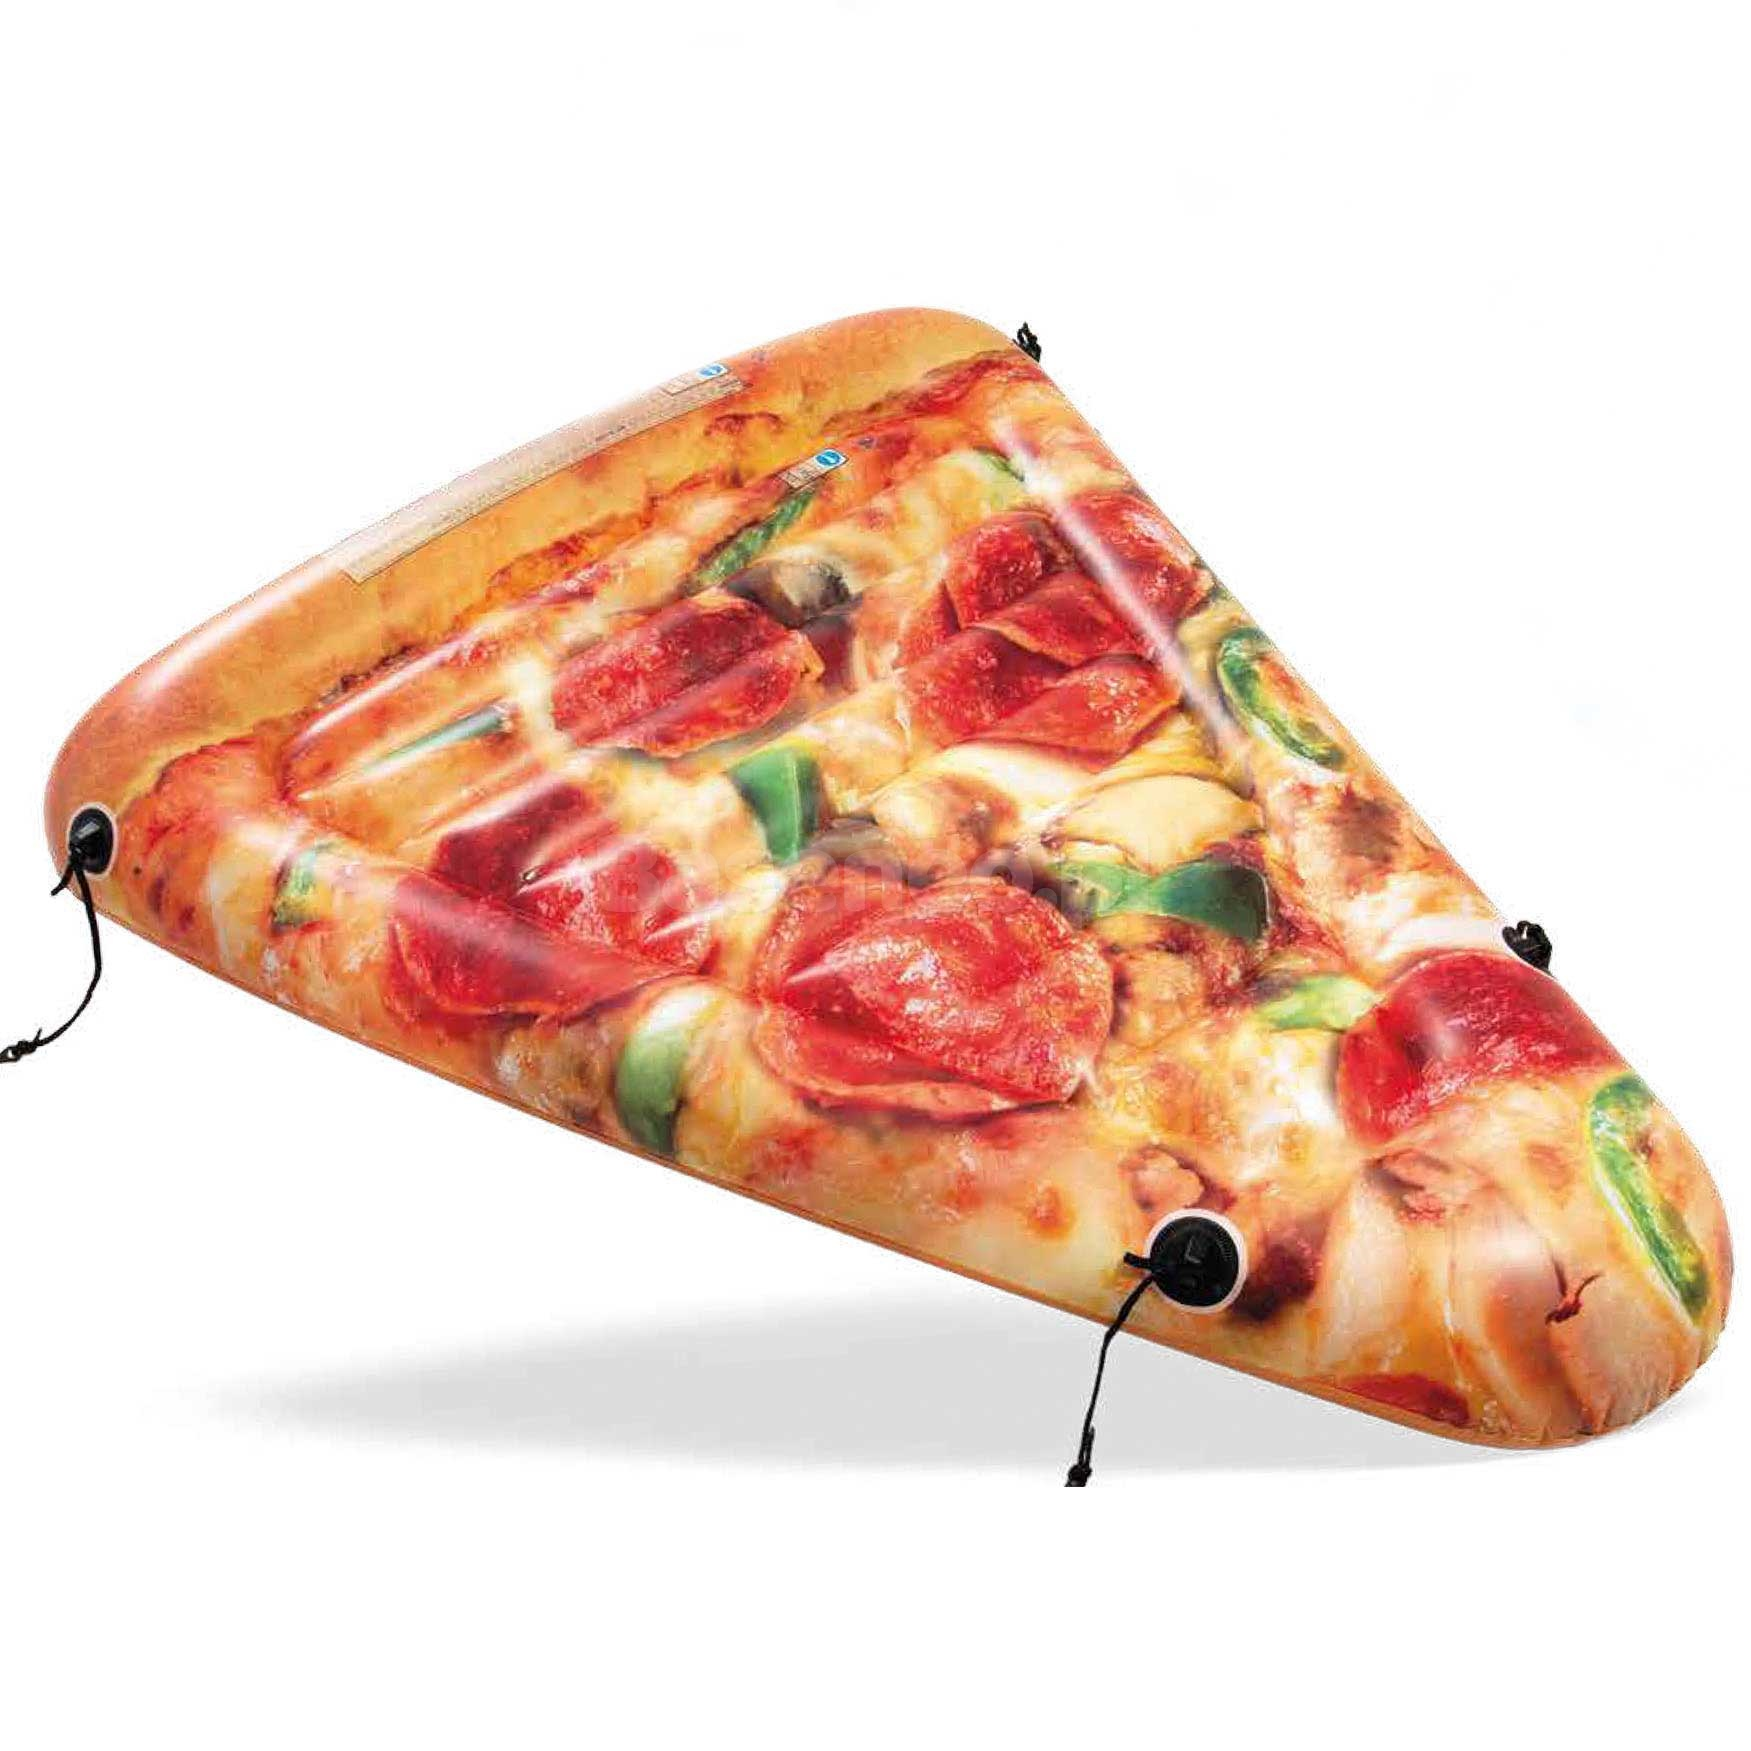 Materac dmuchany Pizza INTEX 58752